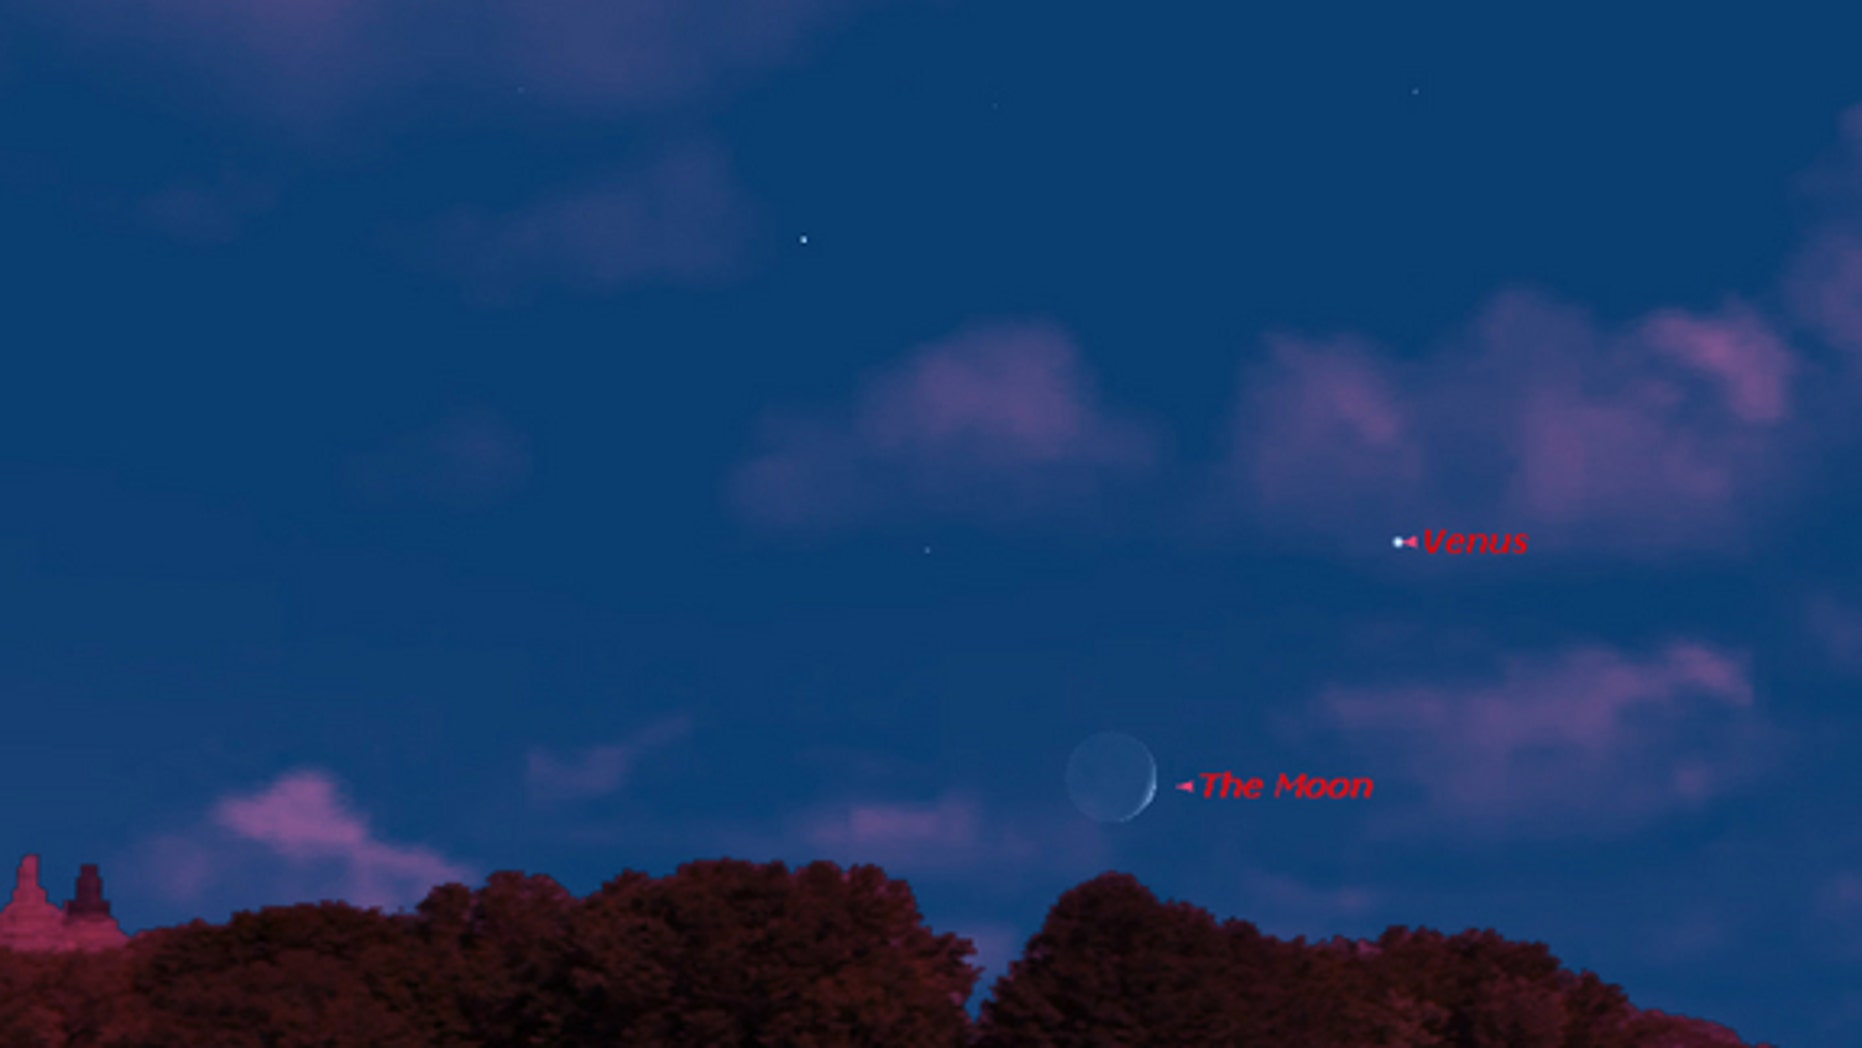 This sky map shows the locations of Venus and the moon on July 10, 2013, in the western sky as they appear to observers in mid-northern latitudes, weather permitting.